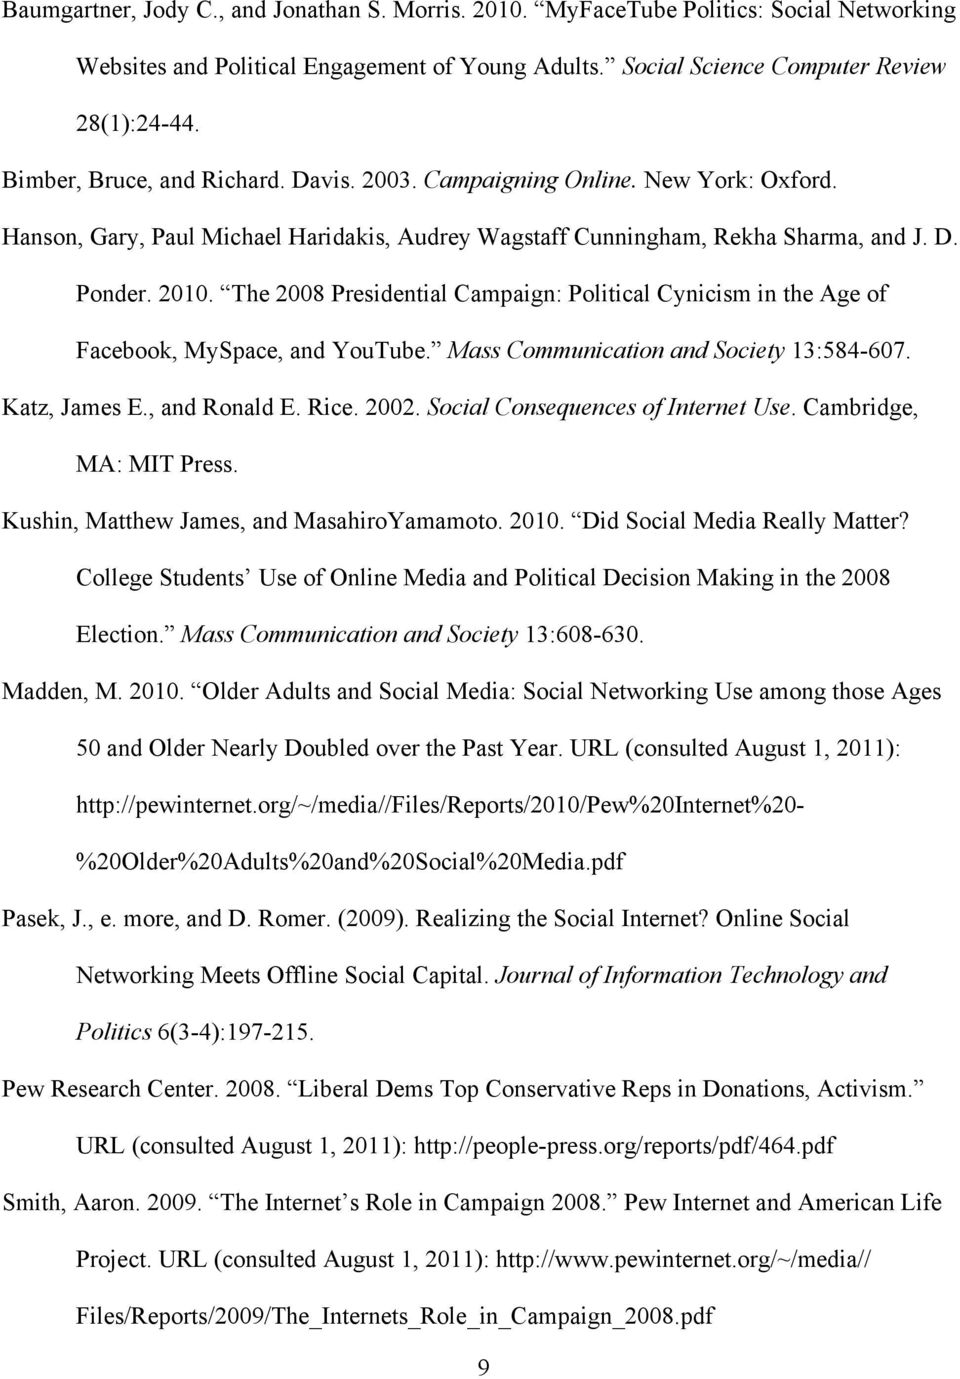 The 2008 Presidential Campaign: Political Cynicism in the Age of Facebook, MySpace, and YouTube. Mass Communication and Society 13:584-607. Katz, James E., and Ronald E. Rice. 2002.